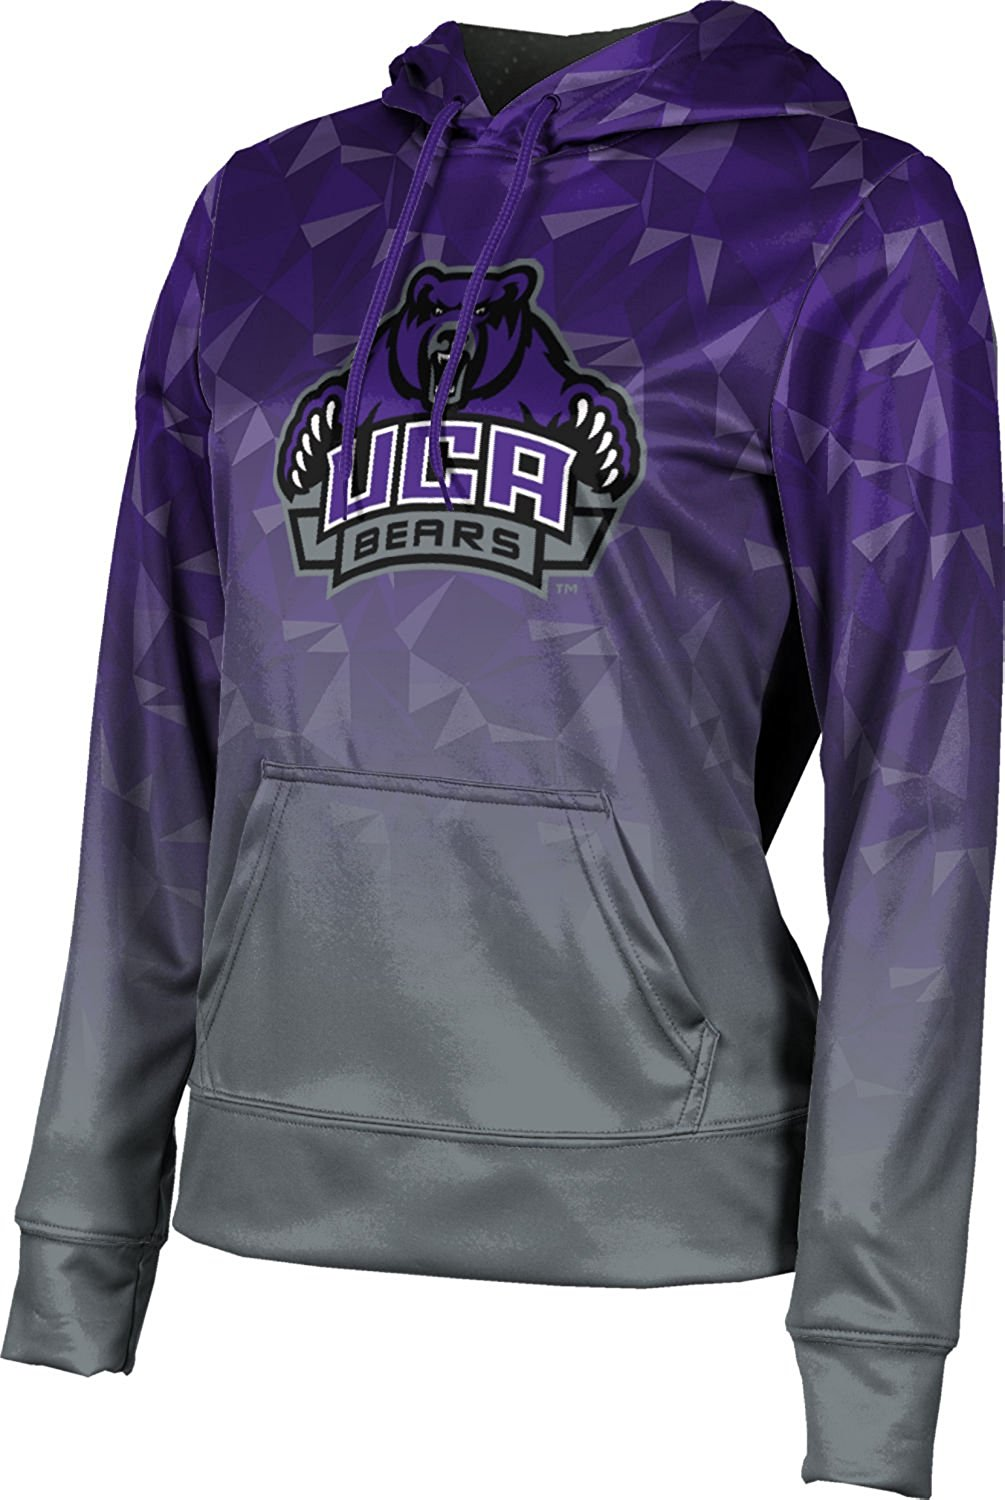 ProSphere Girls' University of Central Arkansas Maya Pullover Hoodie